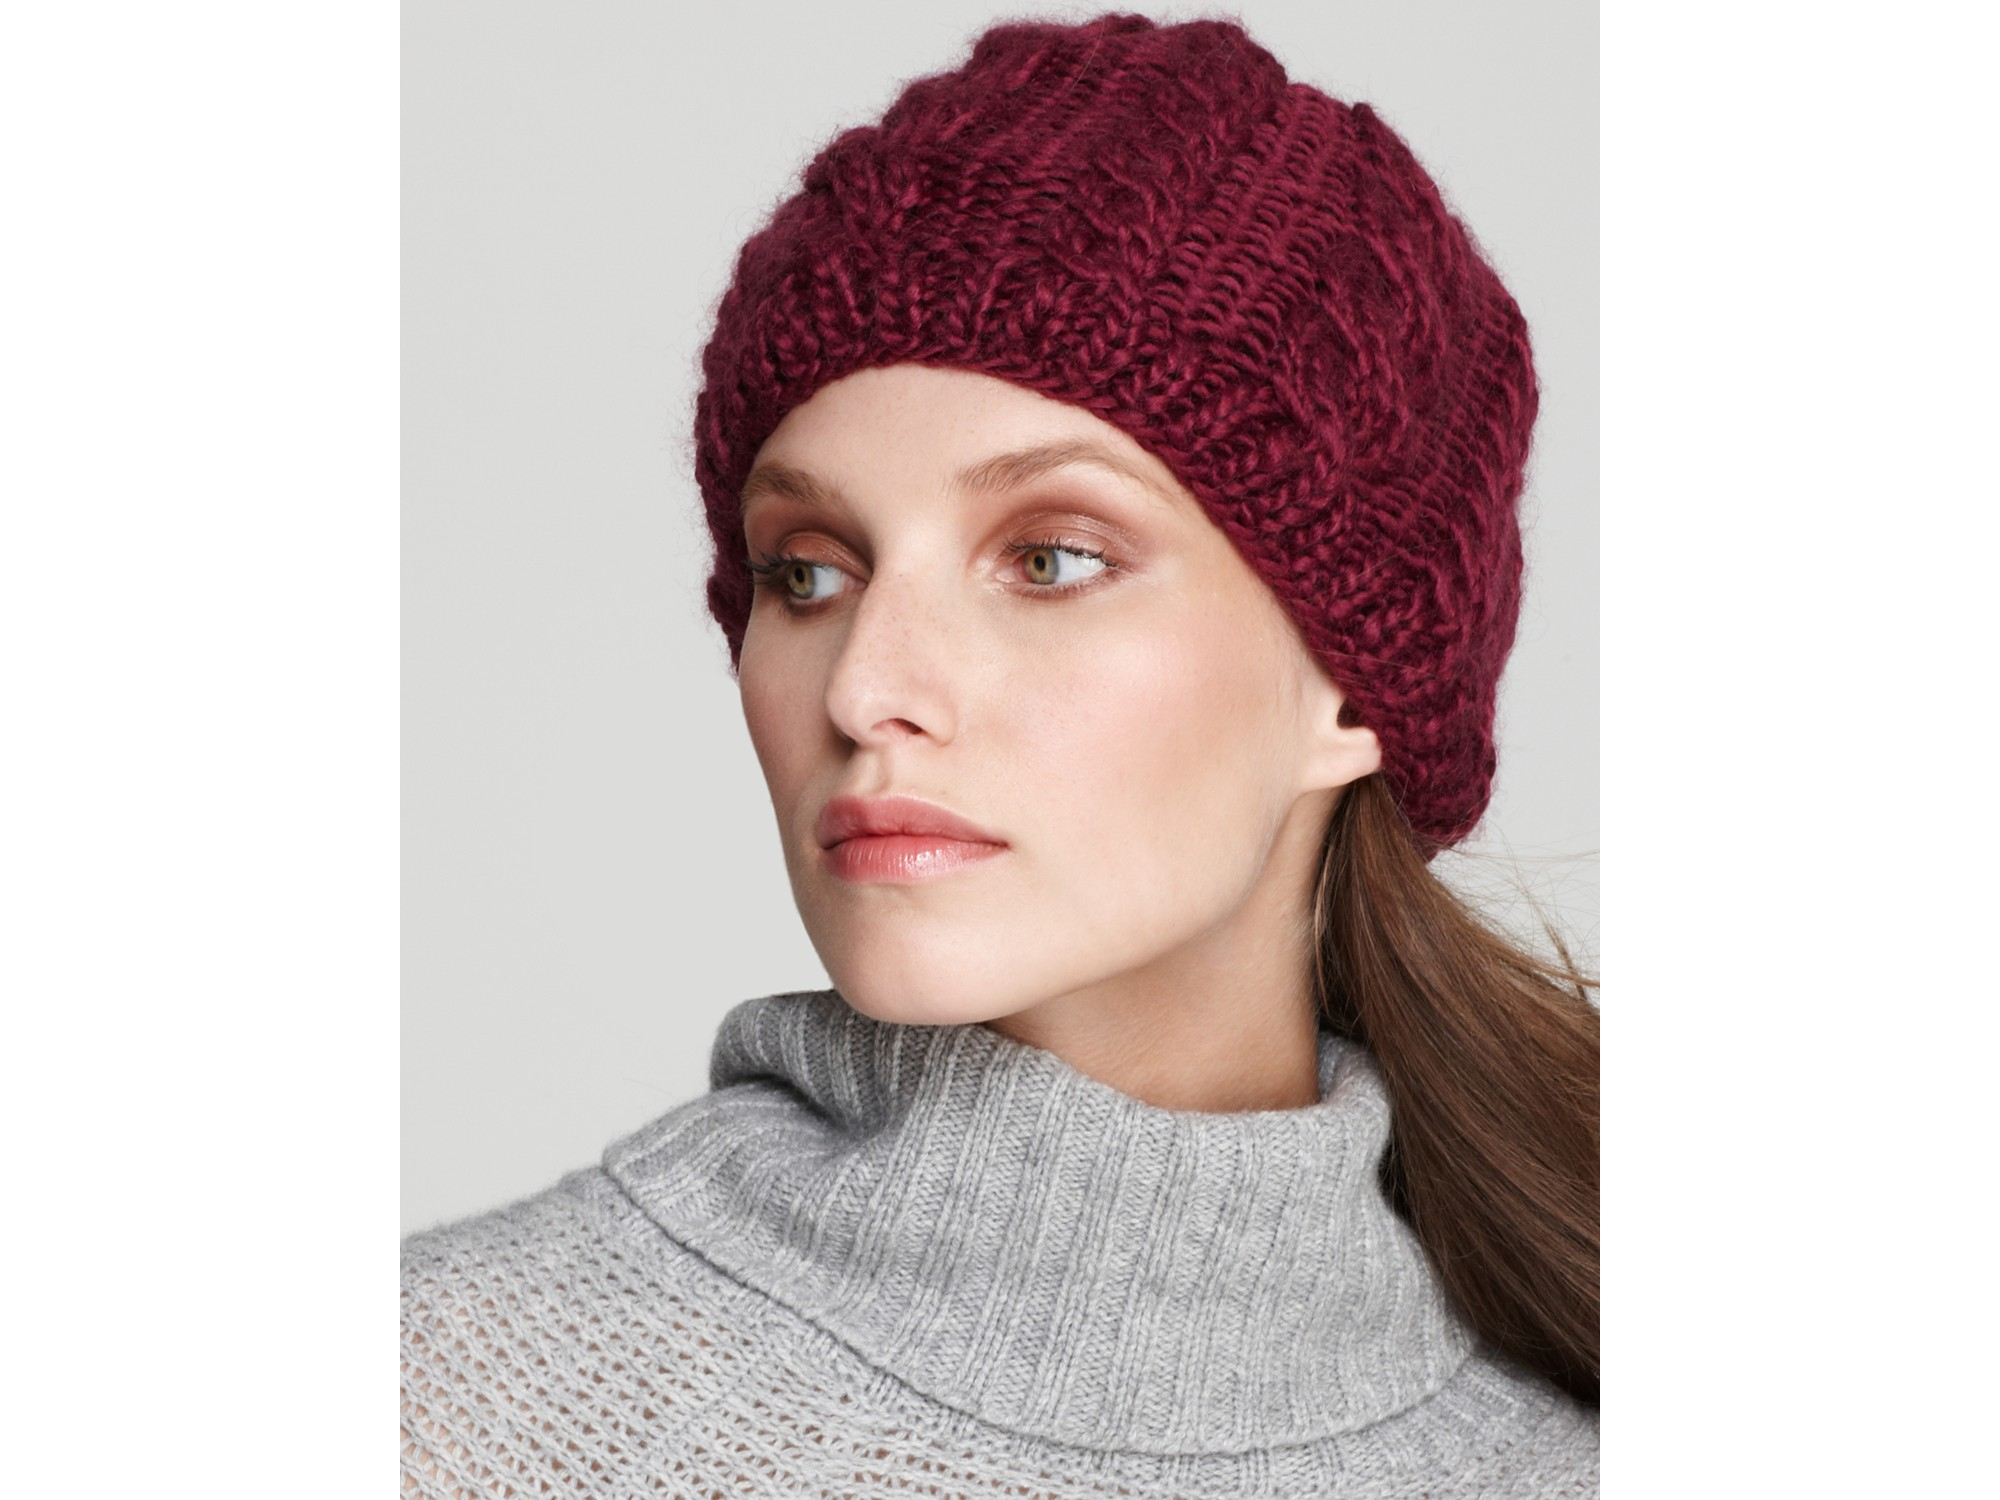 Lyst - The North Face Fuzzy Cable Beanie in White 913aaf0f270